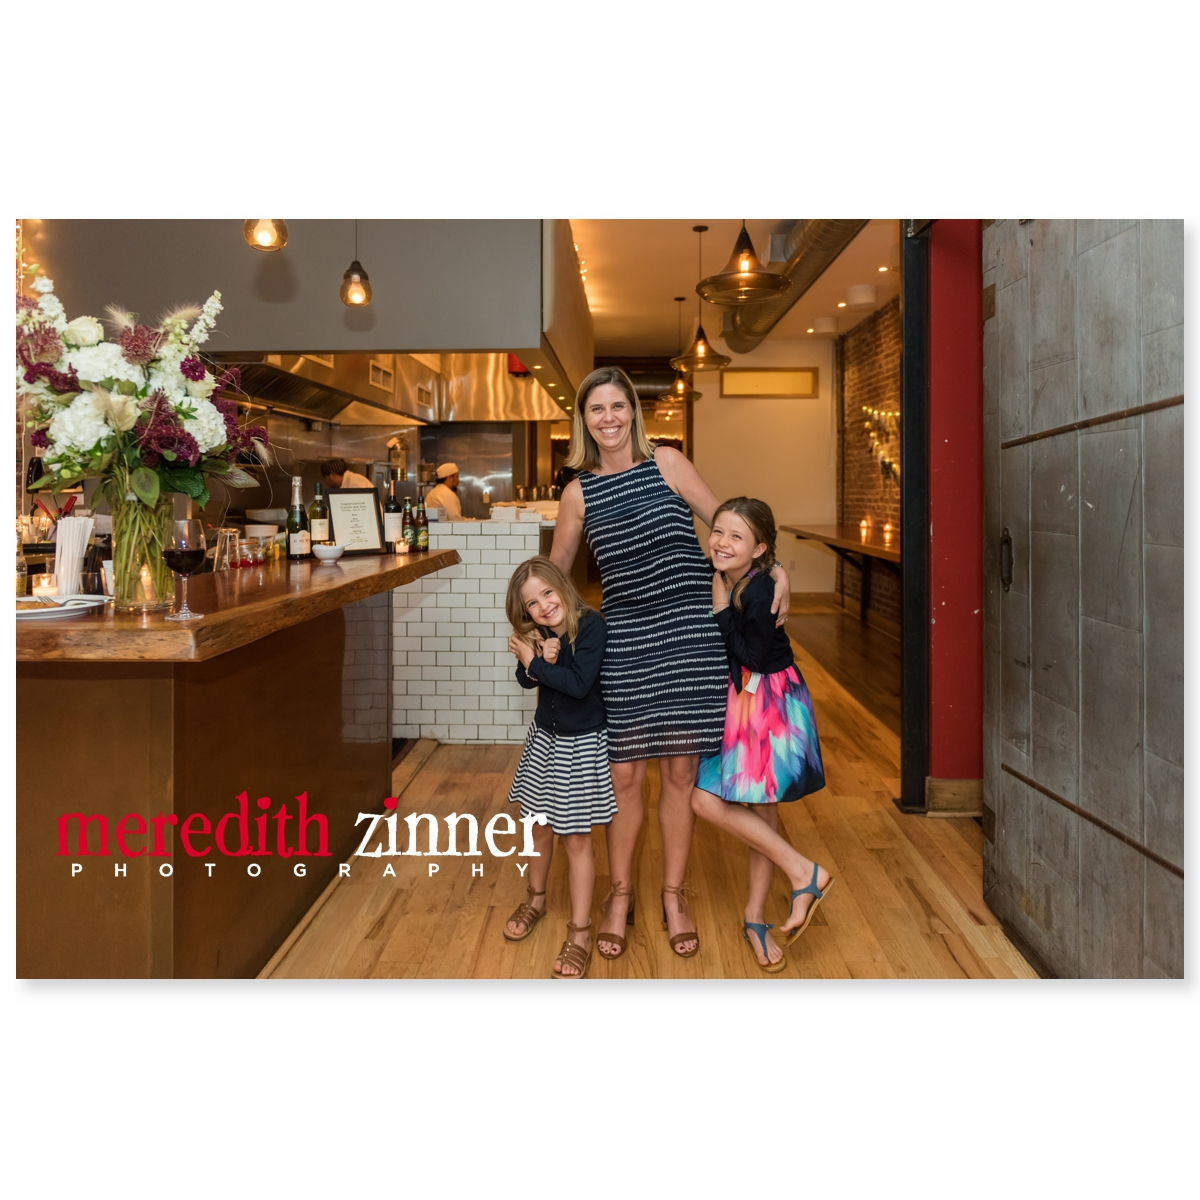 Meredith_Zinner_Photography_StilesCelebration_0276